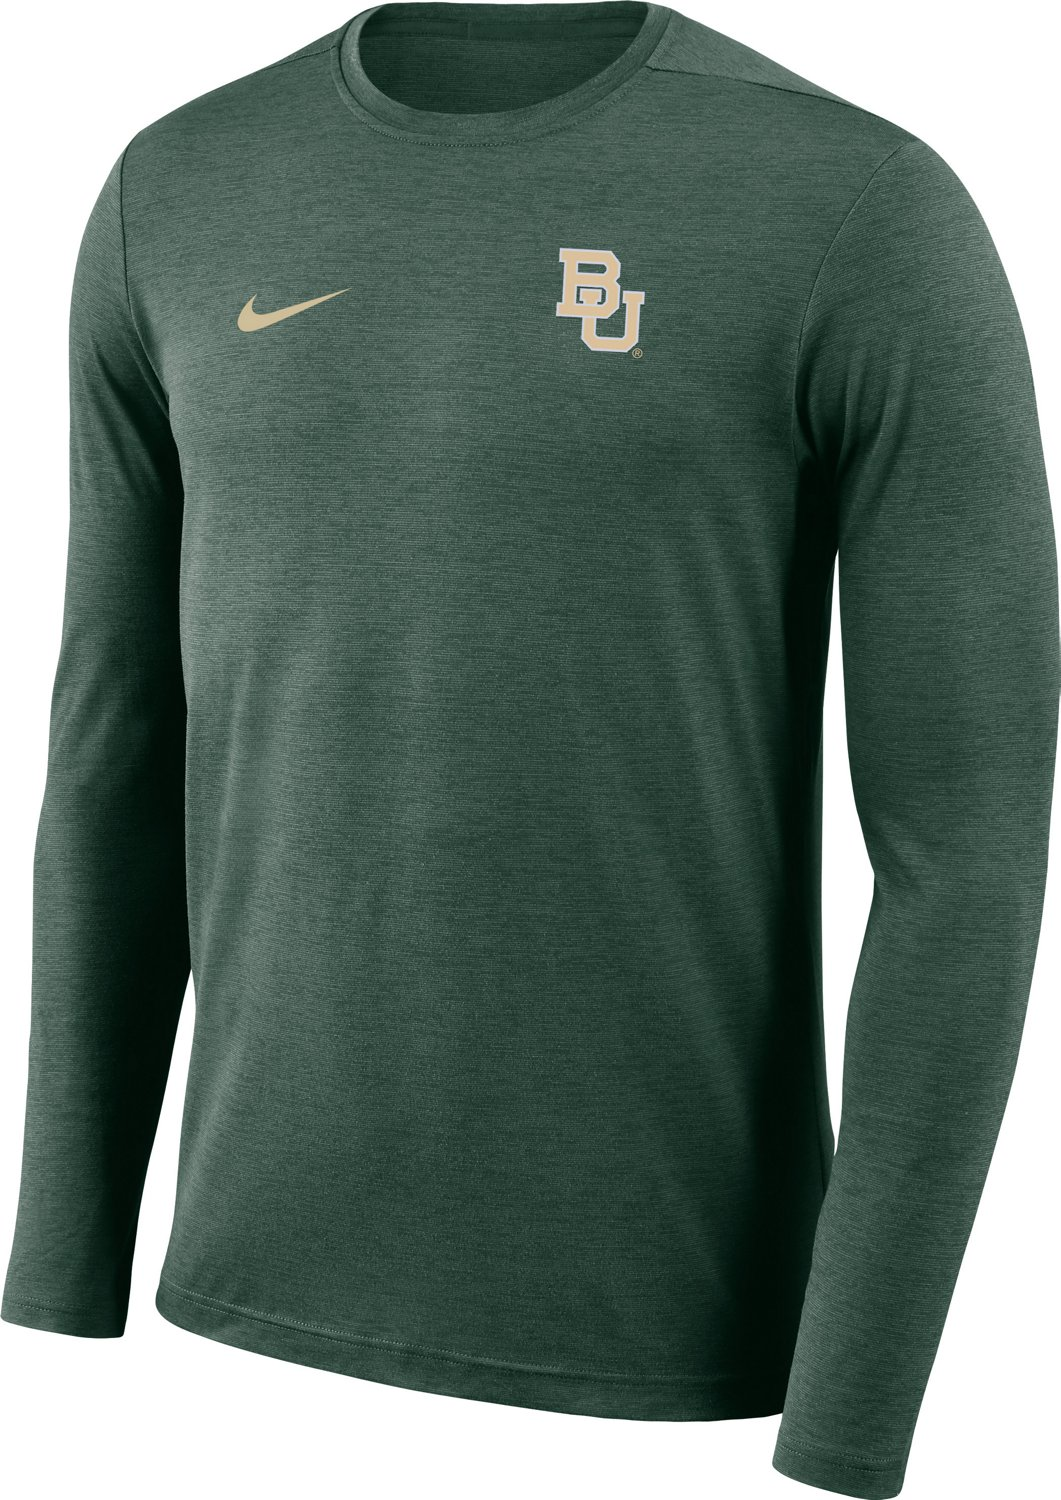 Nike Men's Baylor  University Dri-Fit Coaches T-Shirt